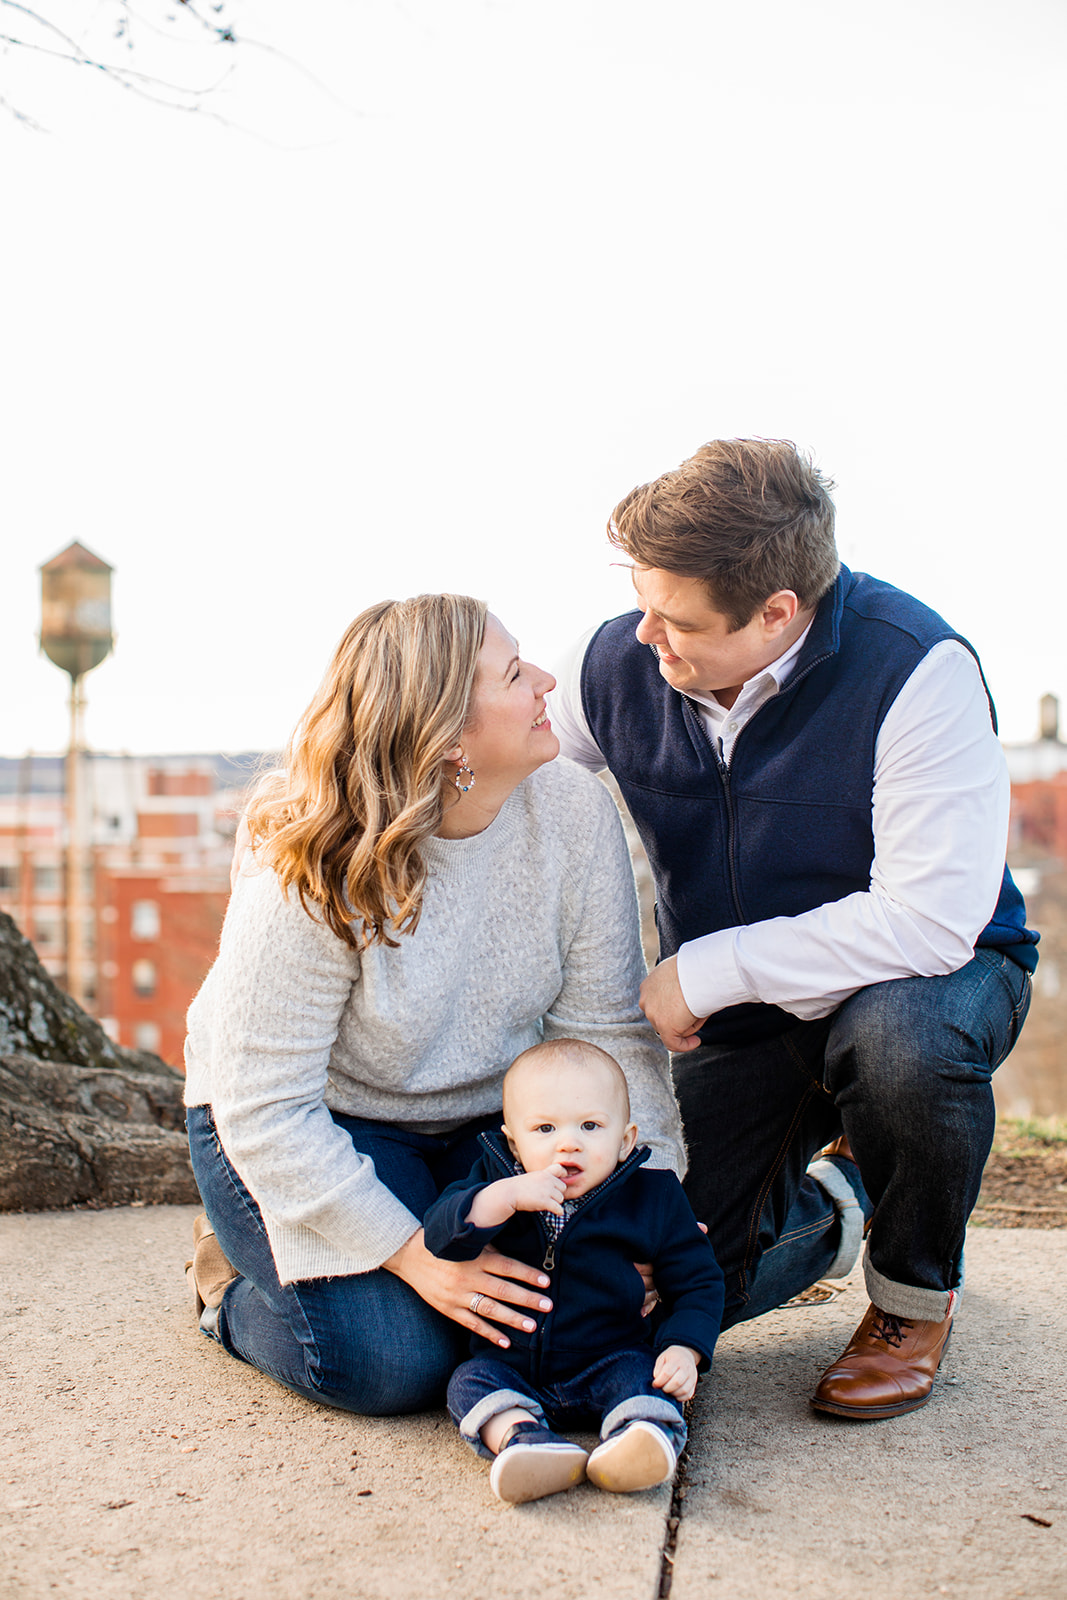 Wesleys One Year Old Photos at Libby Hill Park - Image Property of www.j-dphoto.com